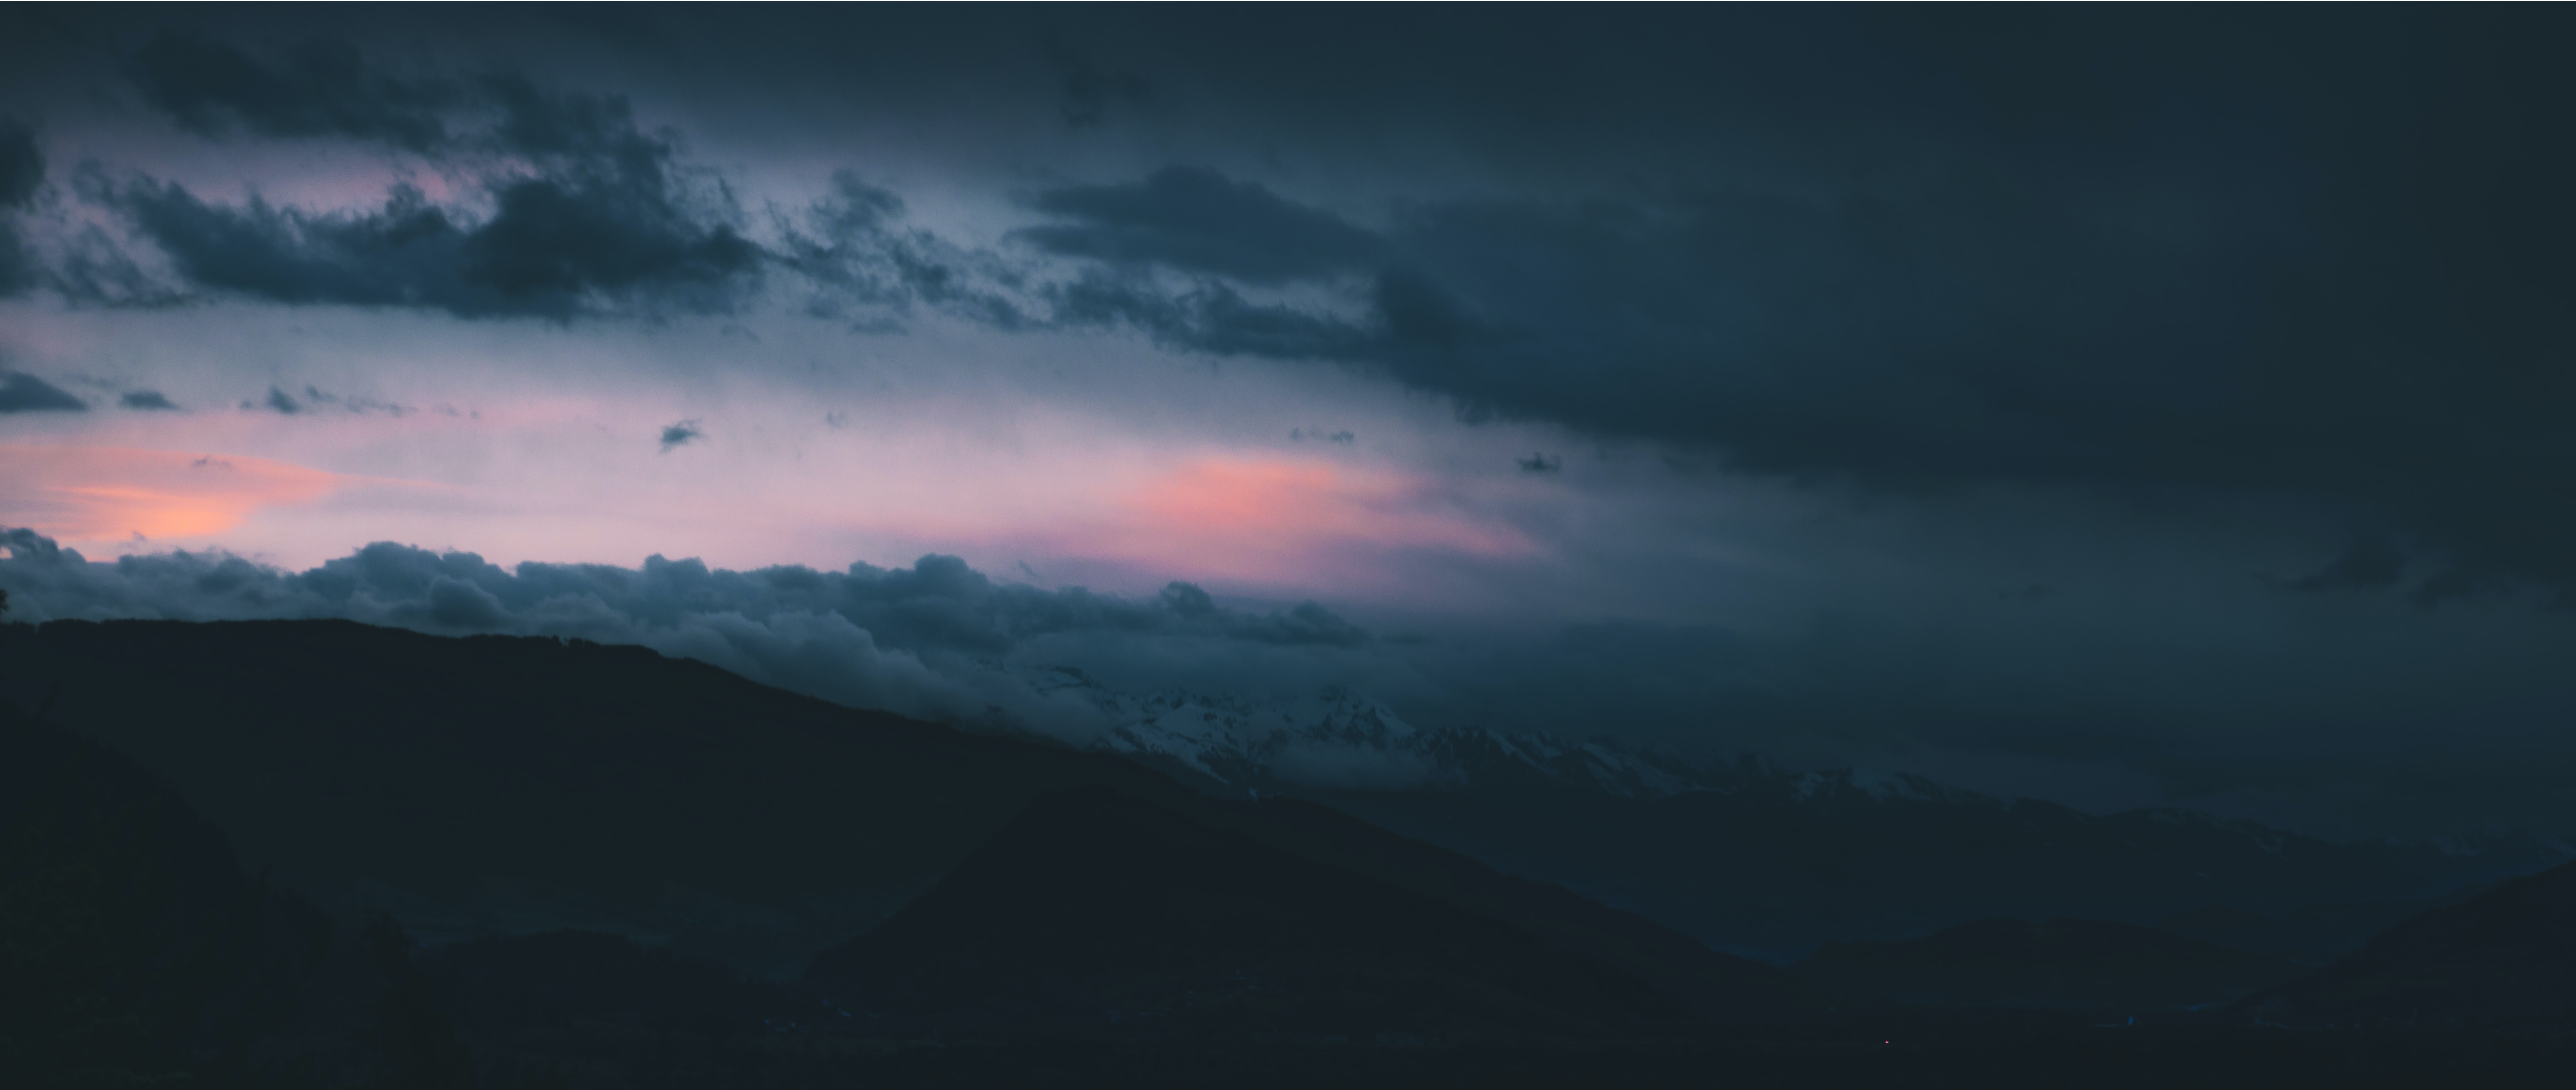 landscape photography of mountains during nighttime